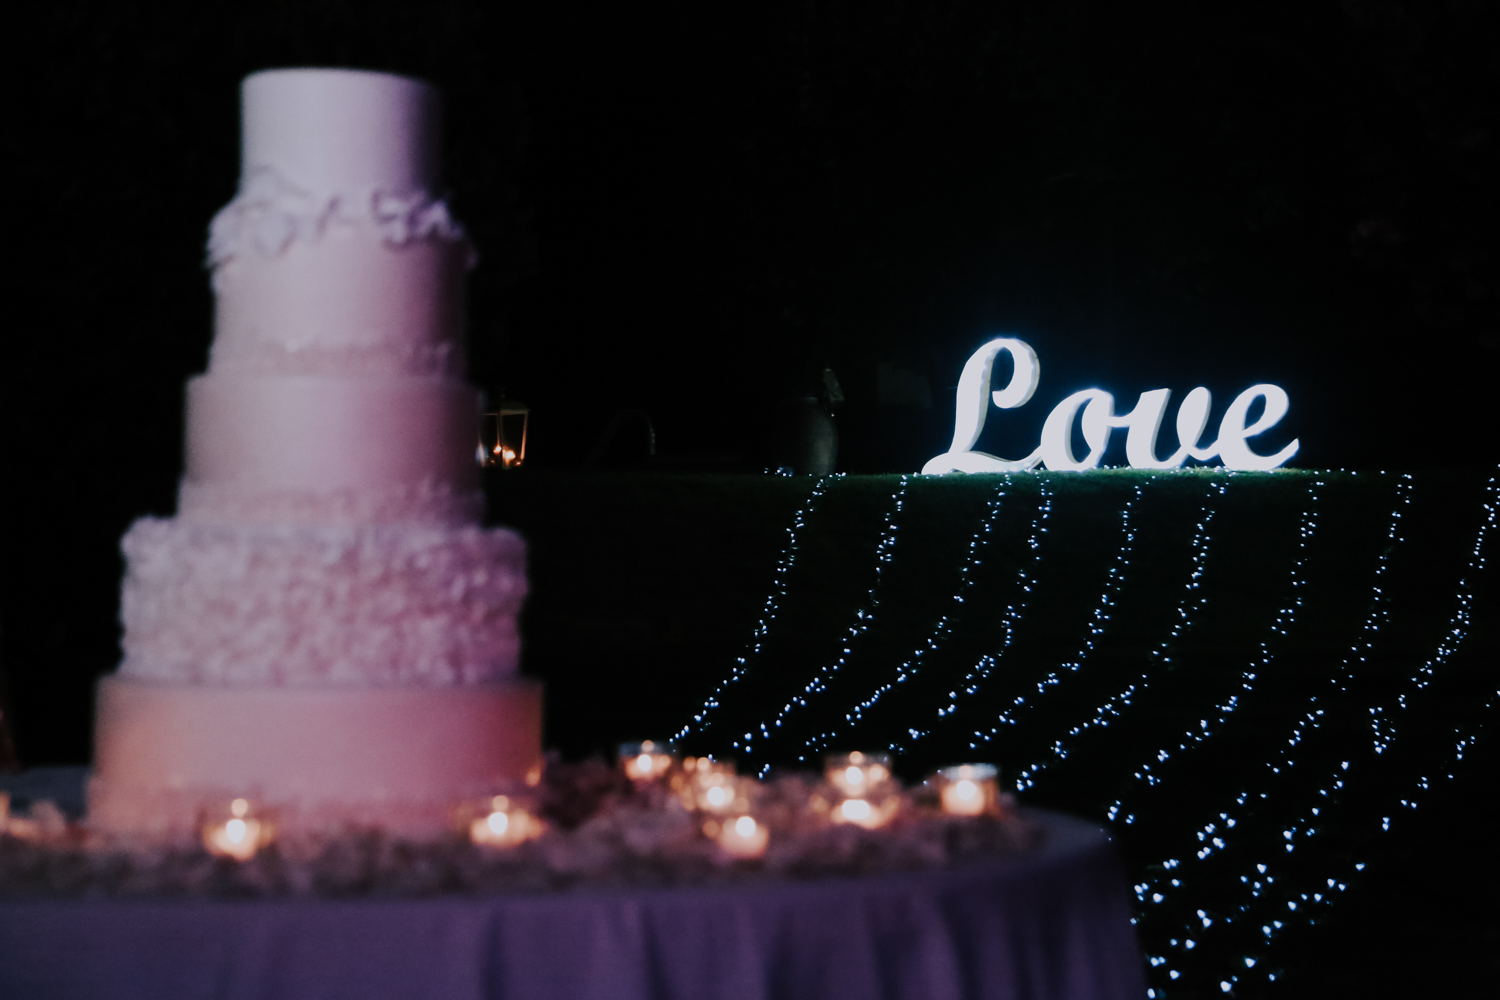 http://www.weddingamalfi.com/wp-content/uploads/Alessandro-and-Diego-wedding-cake.jpg